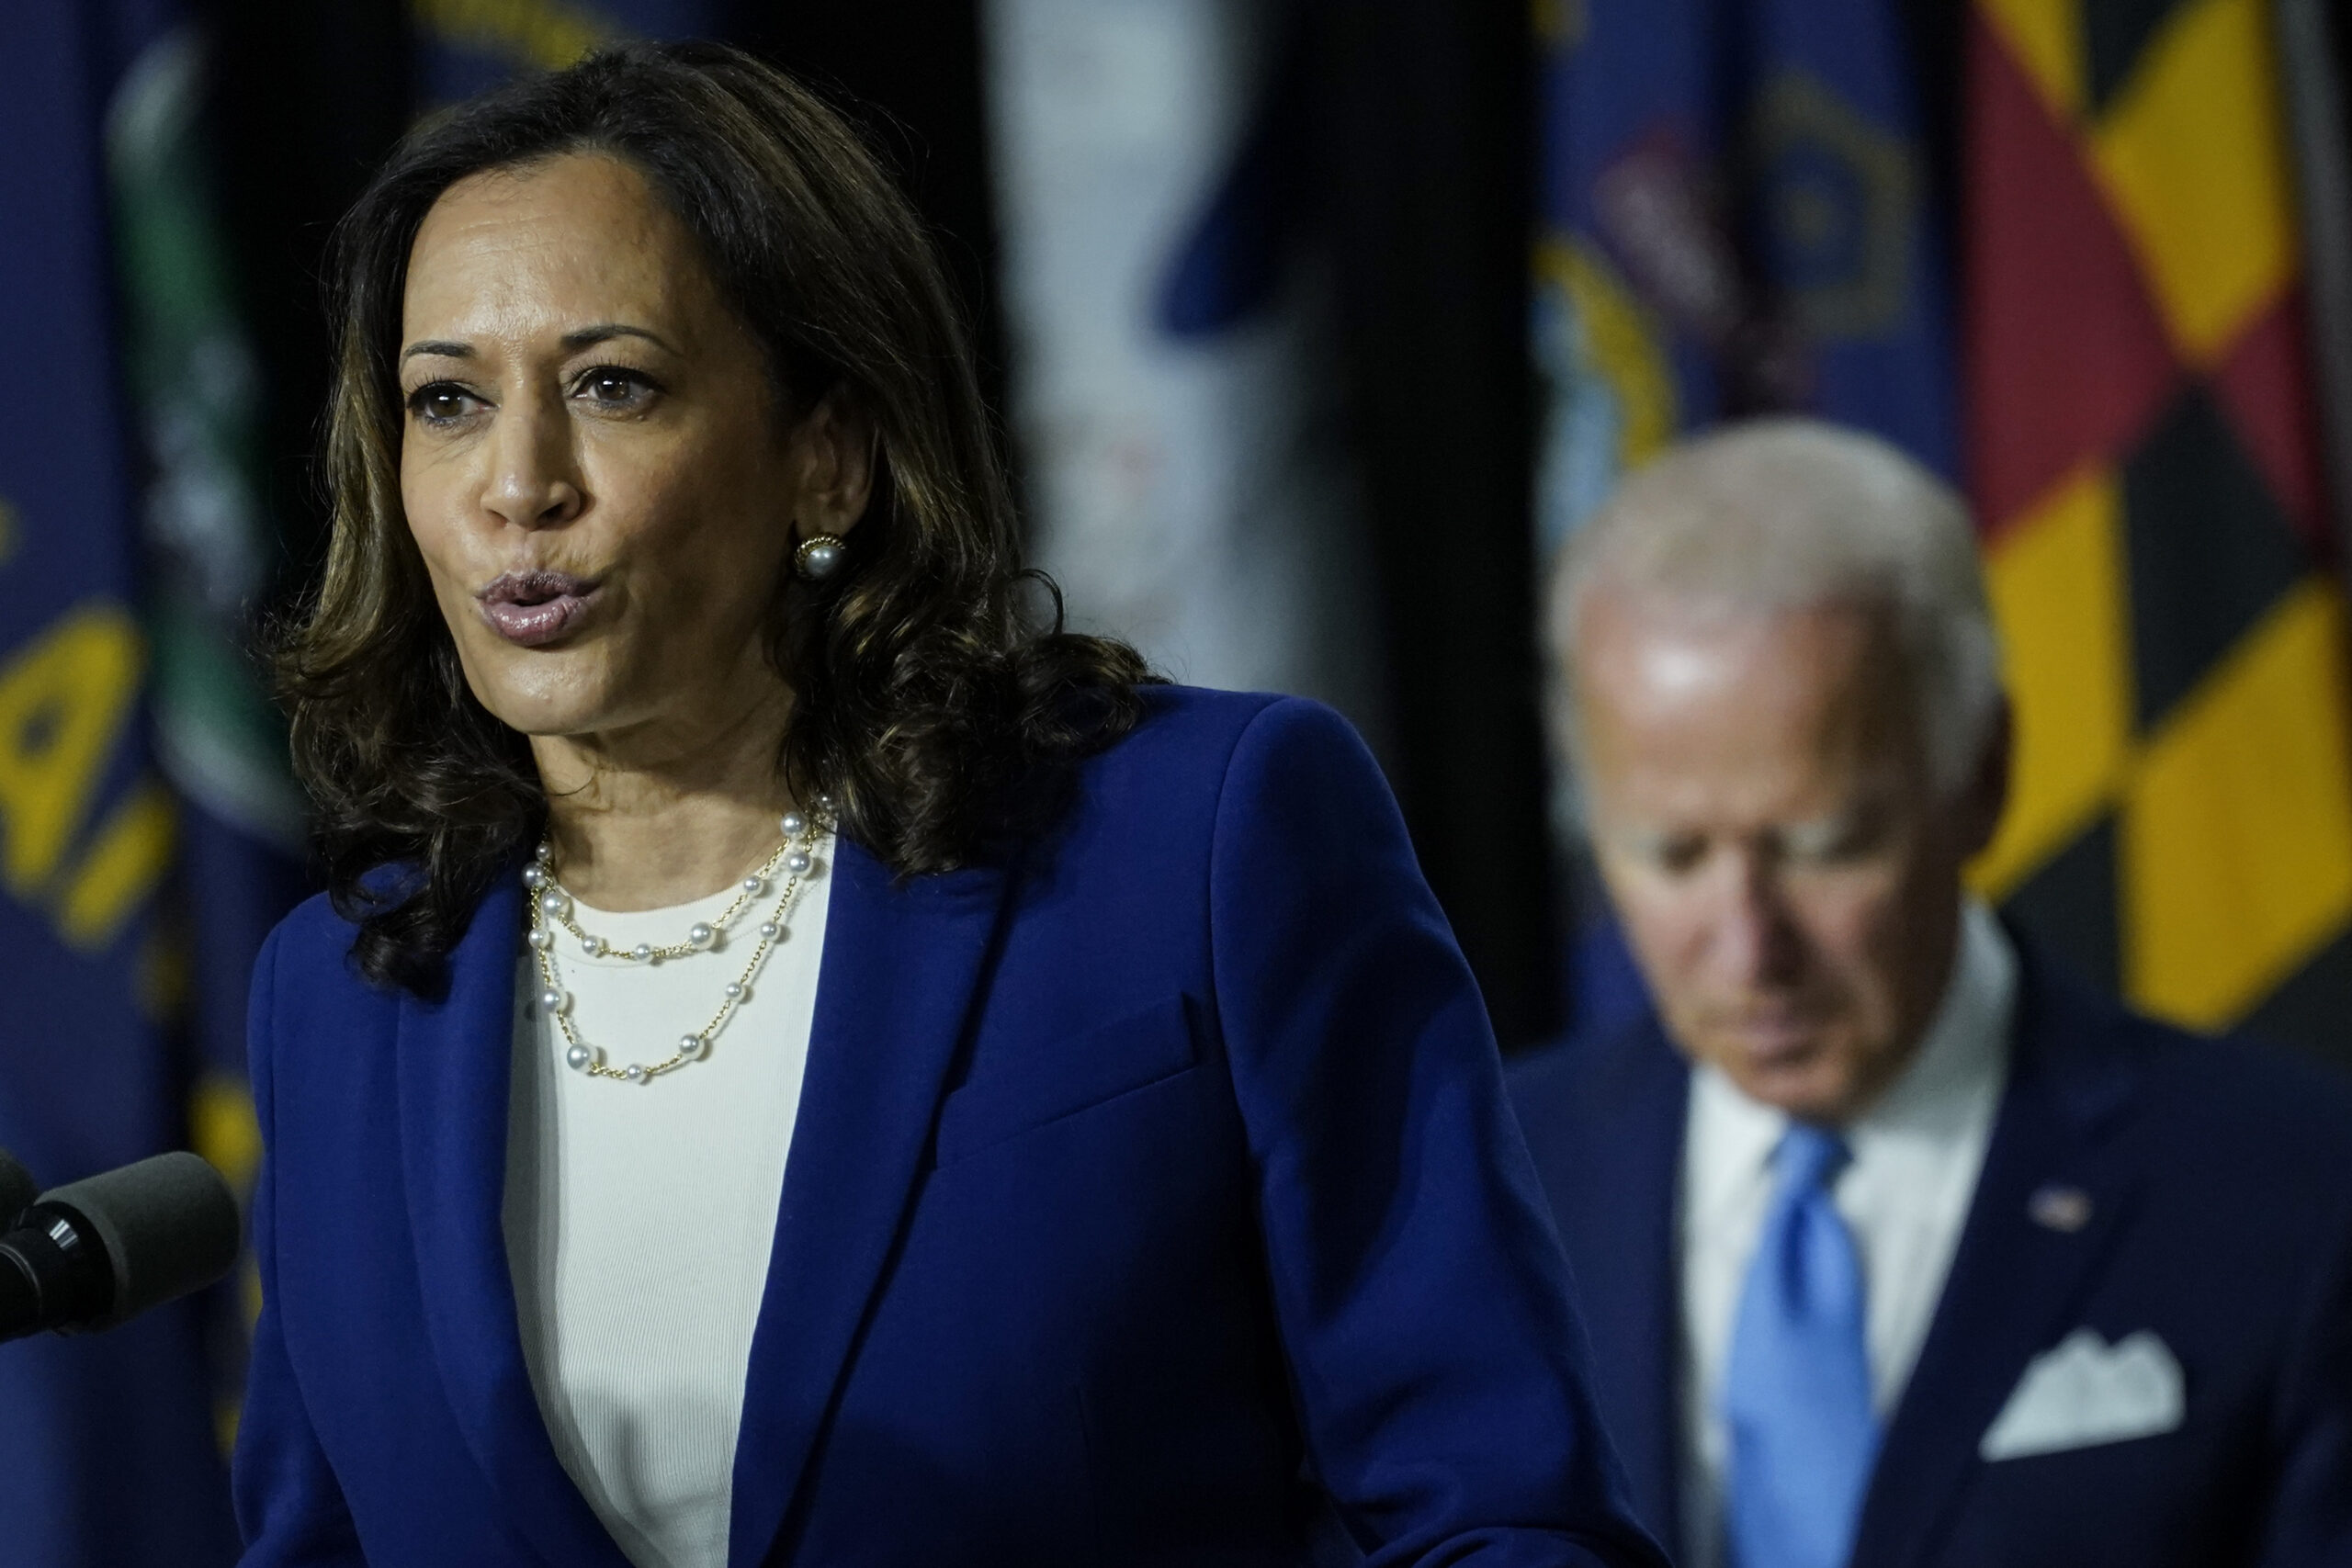 Voters See Harris As More Moderate Than Trump Or Pence Morning Consult